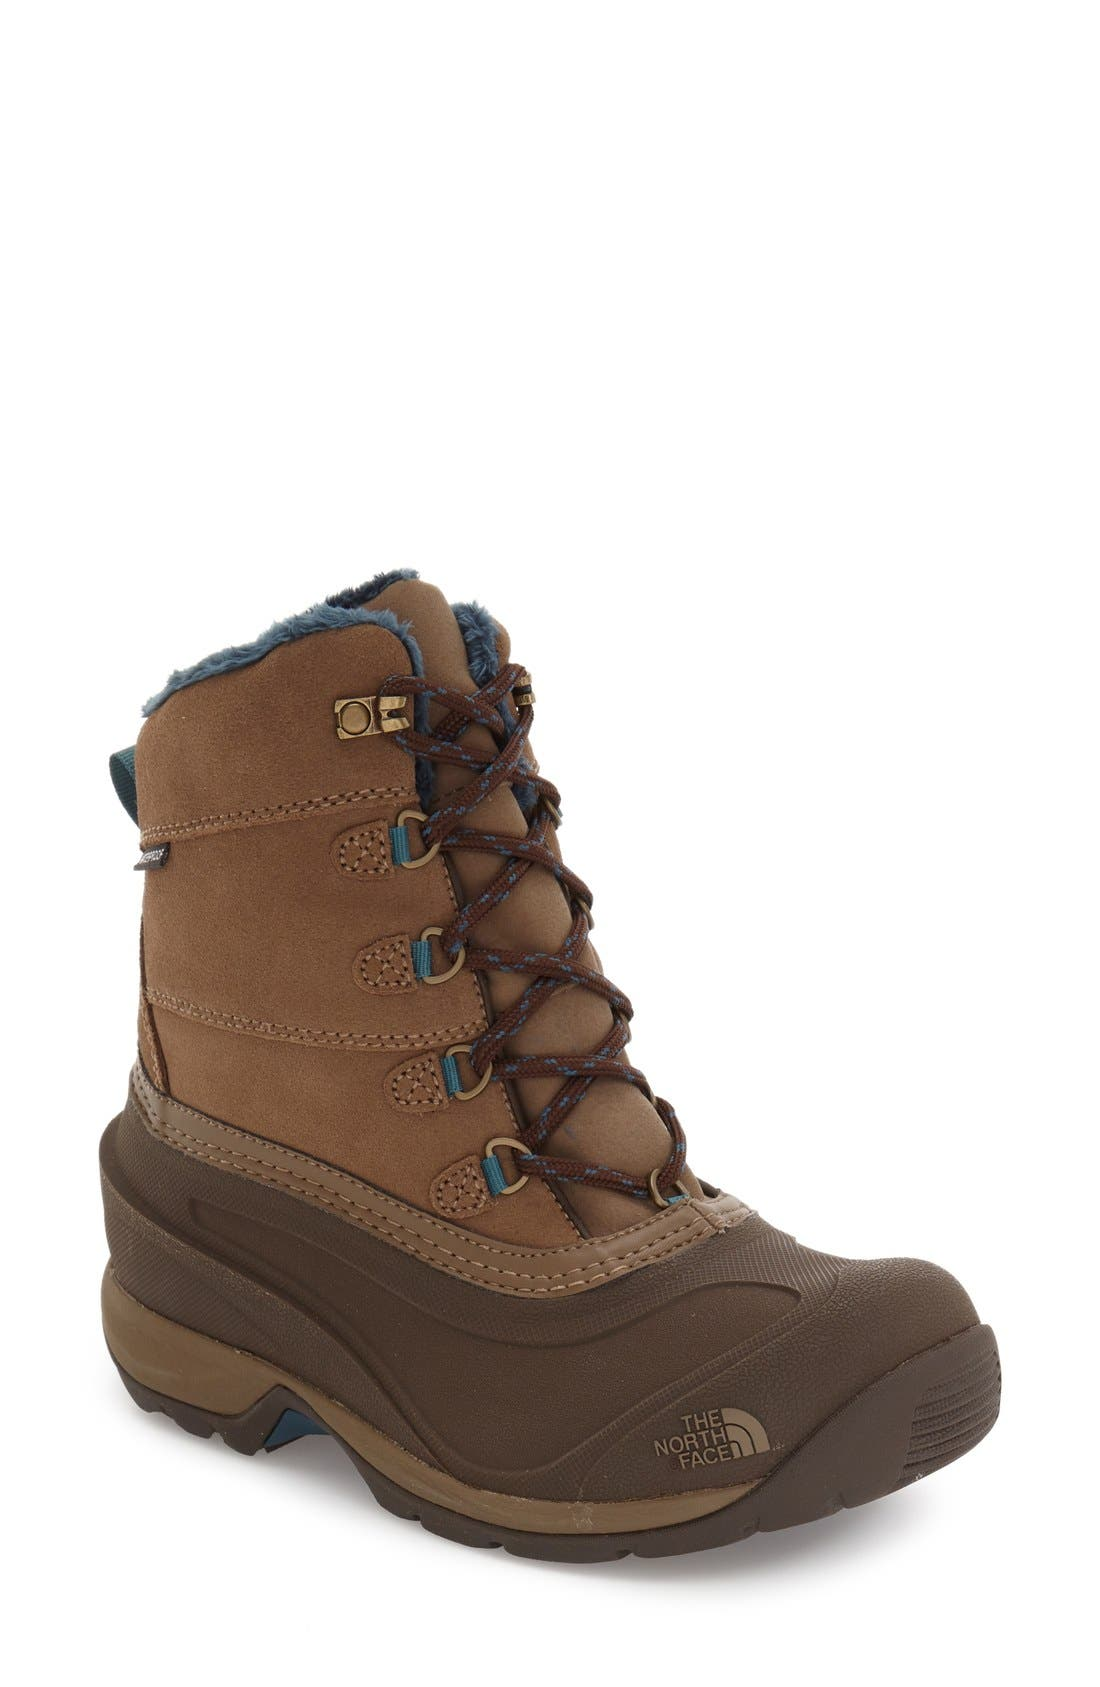 Alternate Image 1 Selected - The North Face 'Chilkat III' Waterproof Insulated Snow Boot (Women)